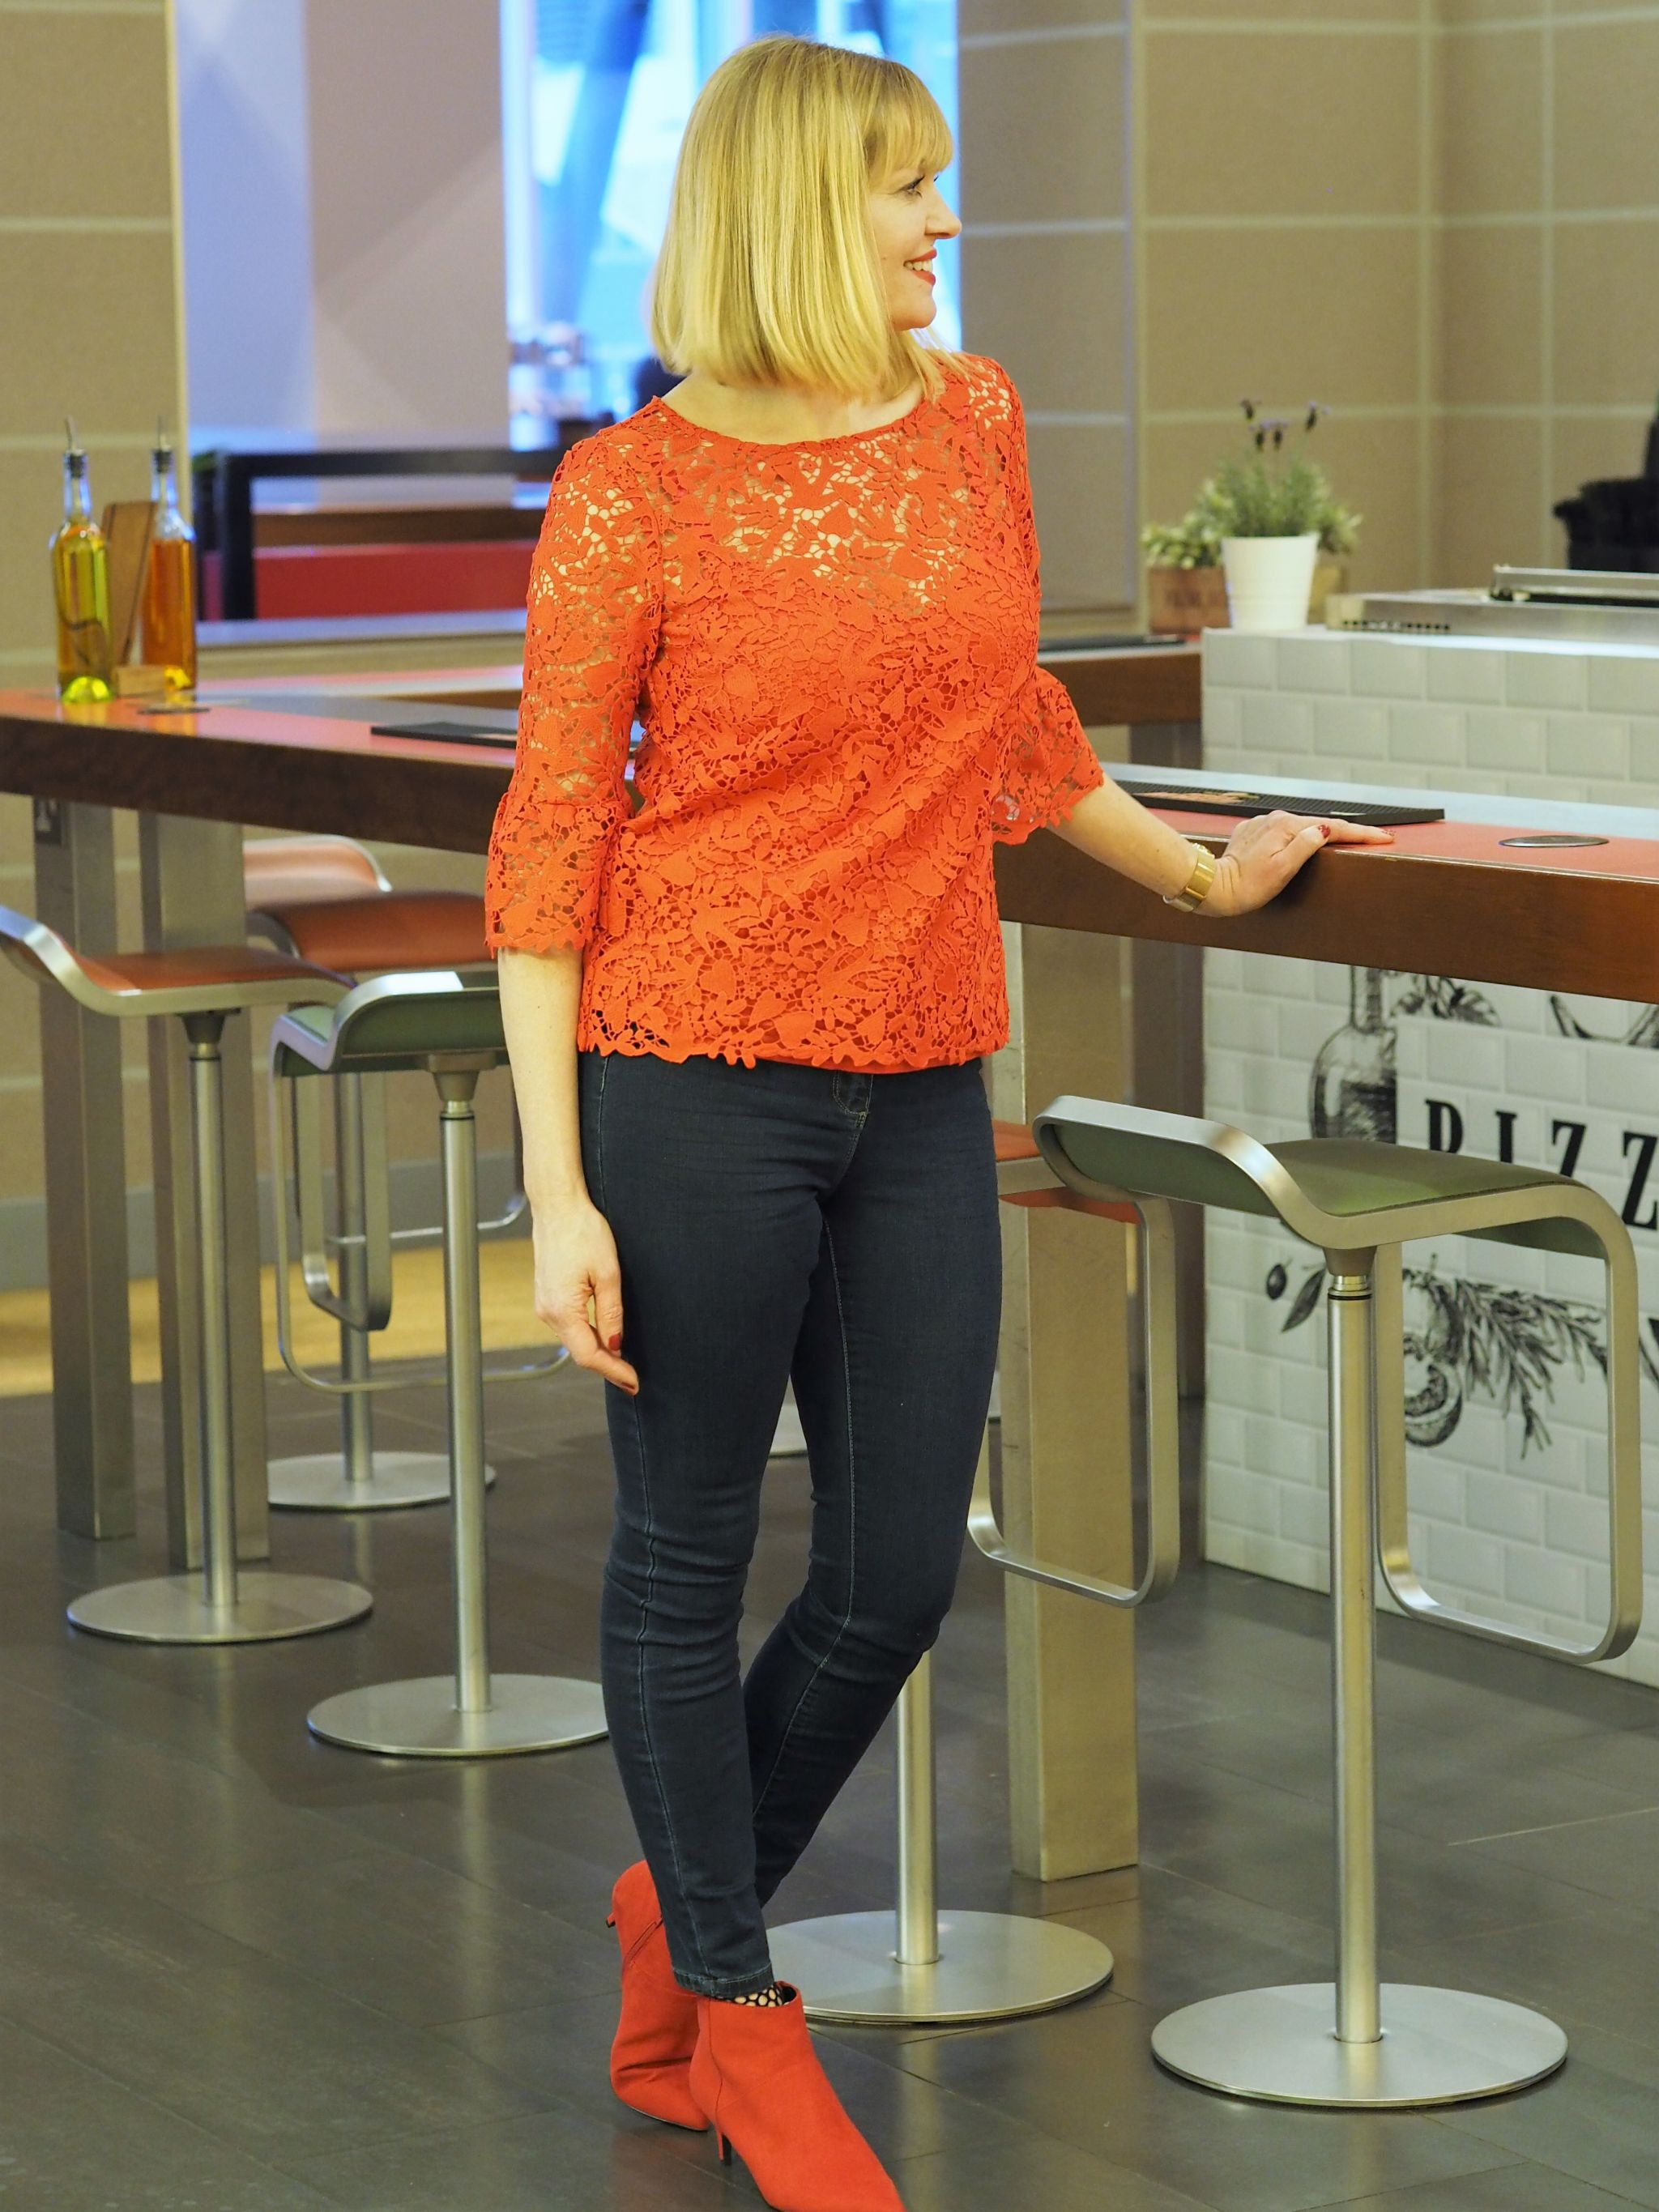 what-lizzy-loves-Boden-red-lace-top-jeans- red-boots